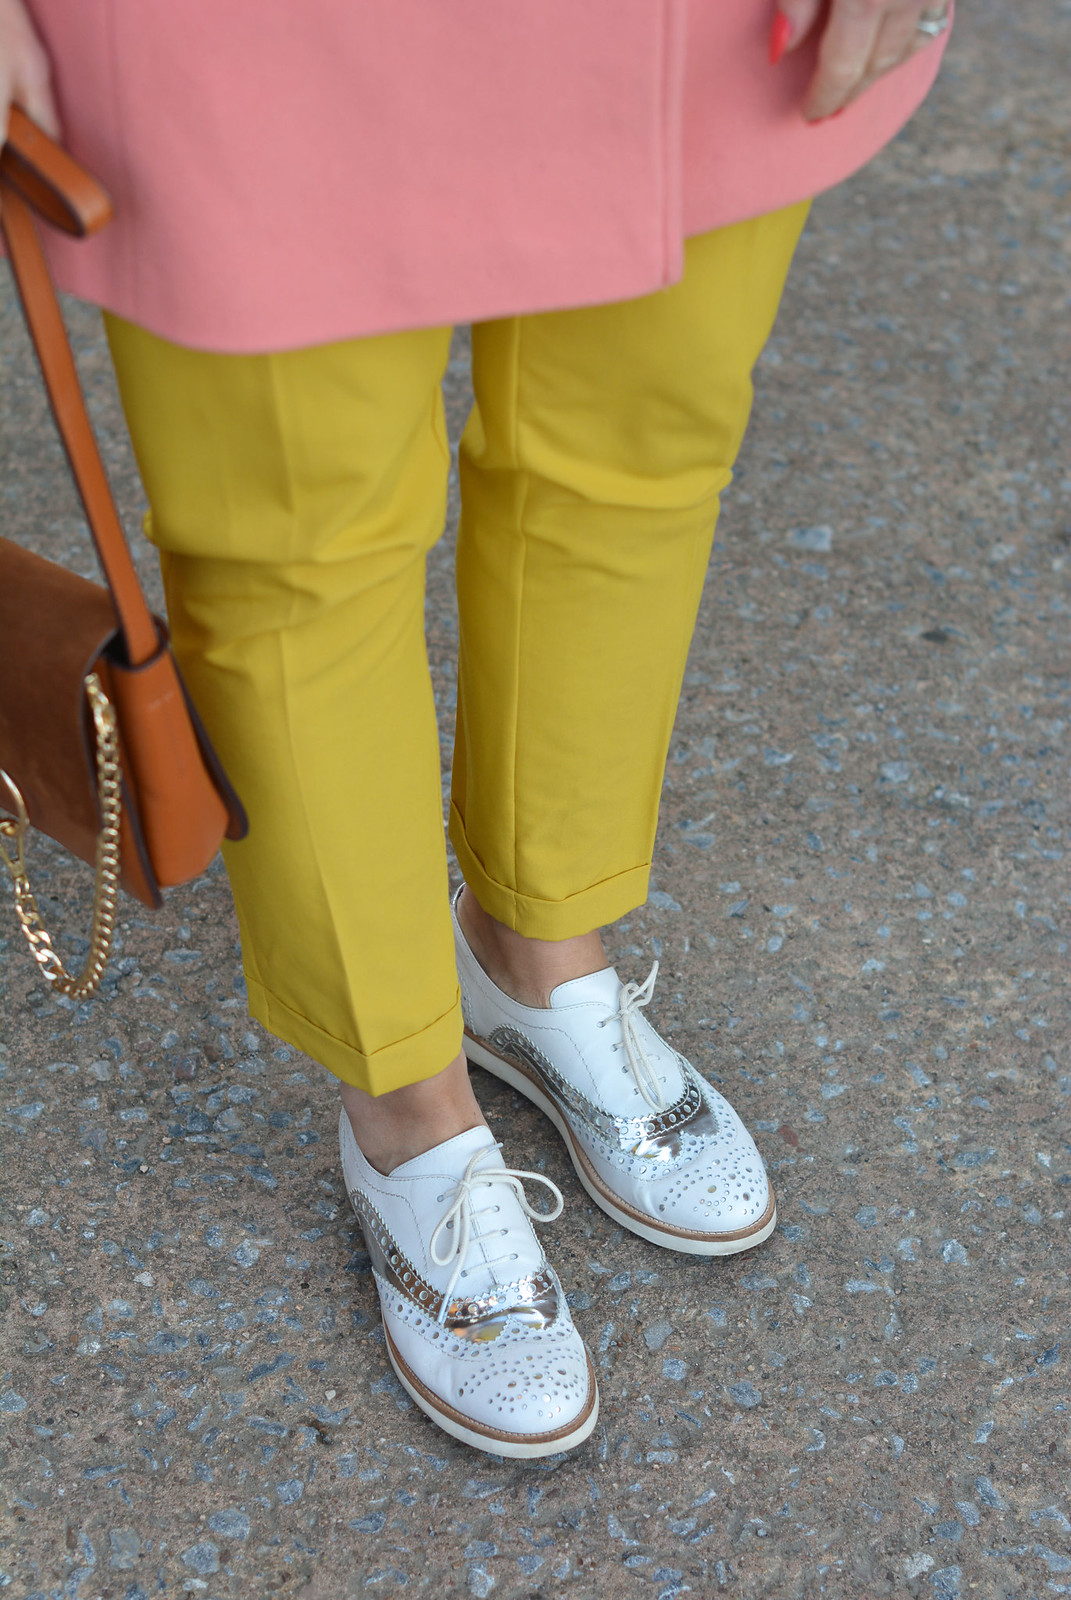 Winter style: Peach coat, mustard yellow trousers, silver/white brogues | Not Dressed As Lamb